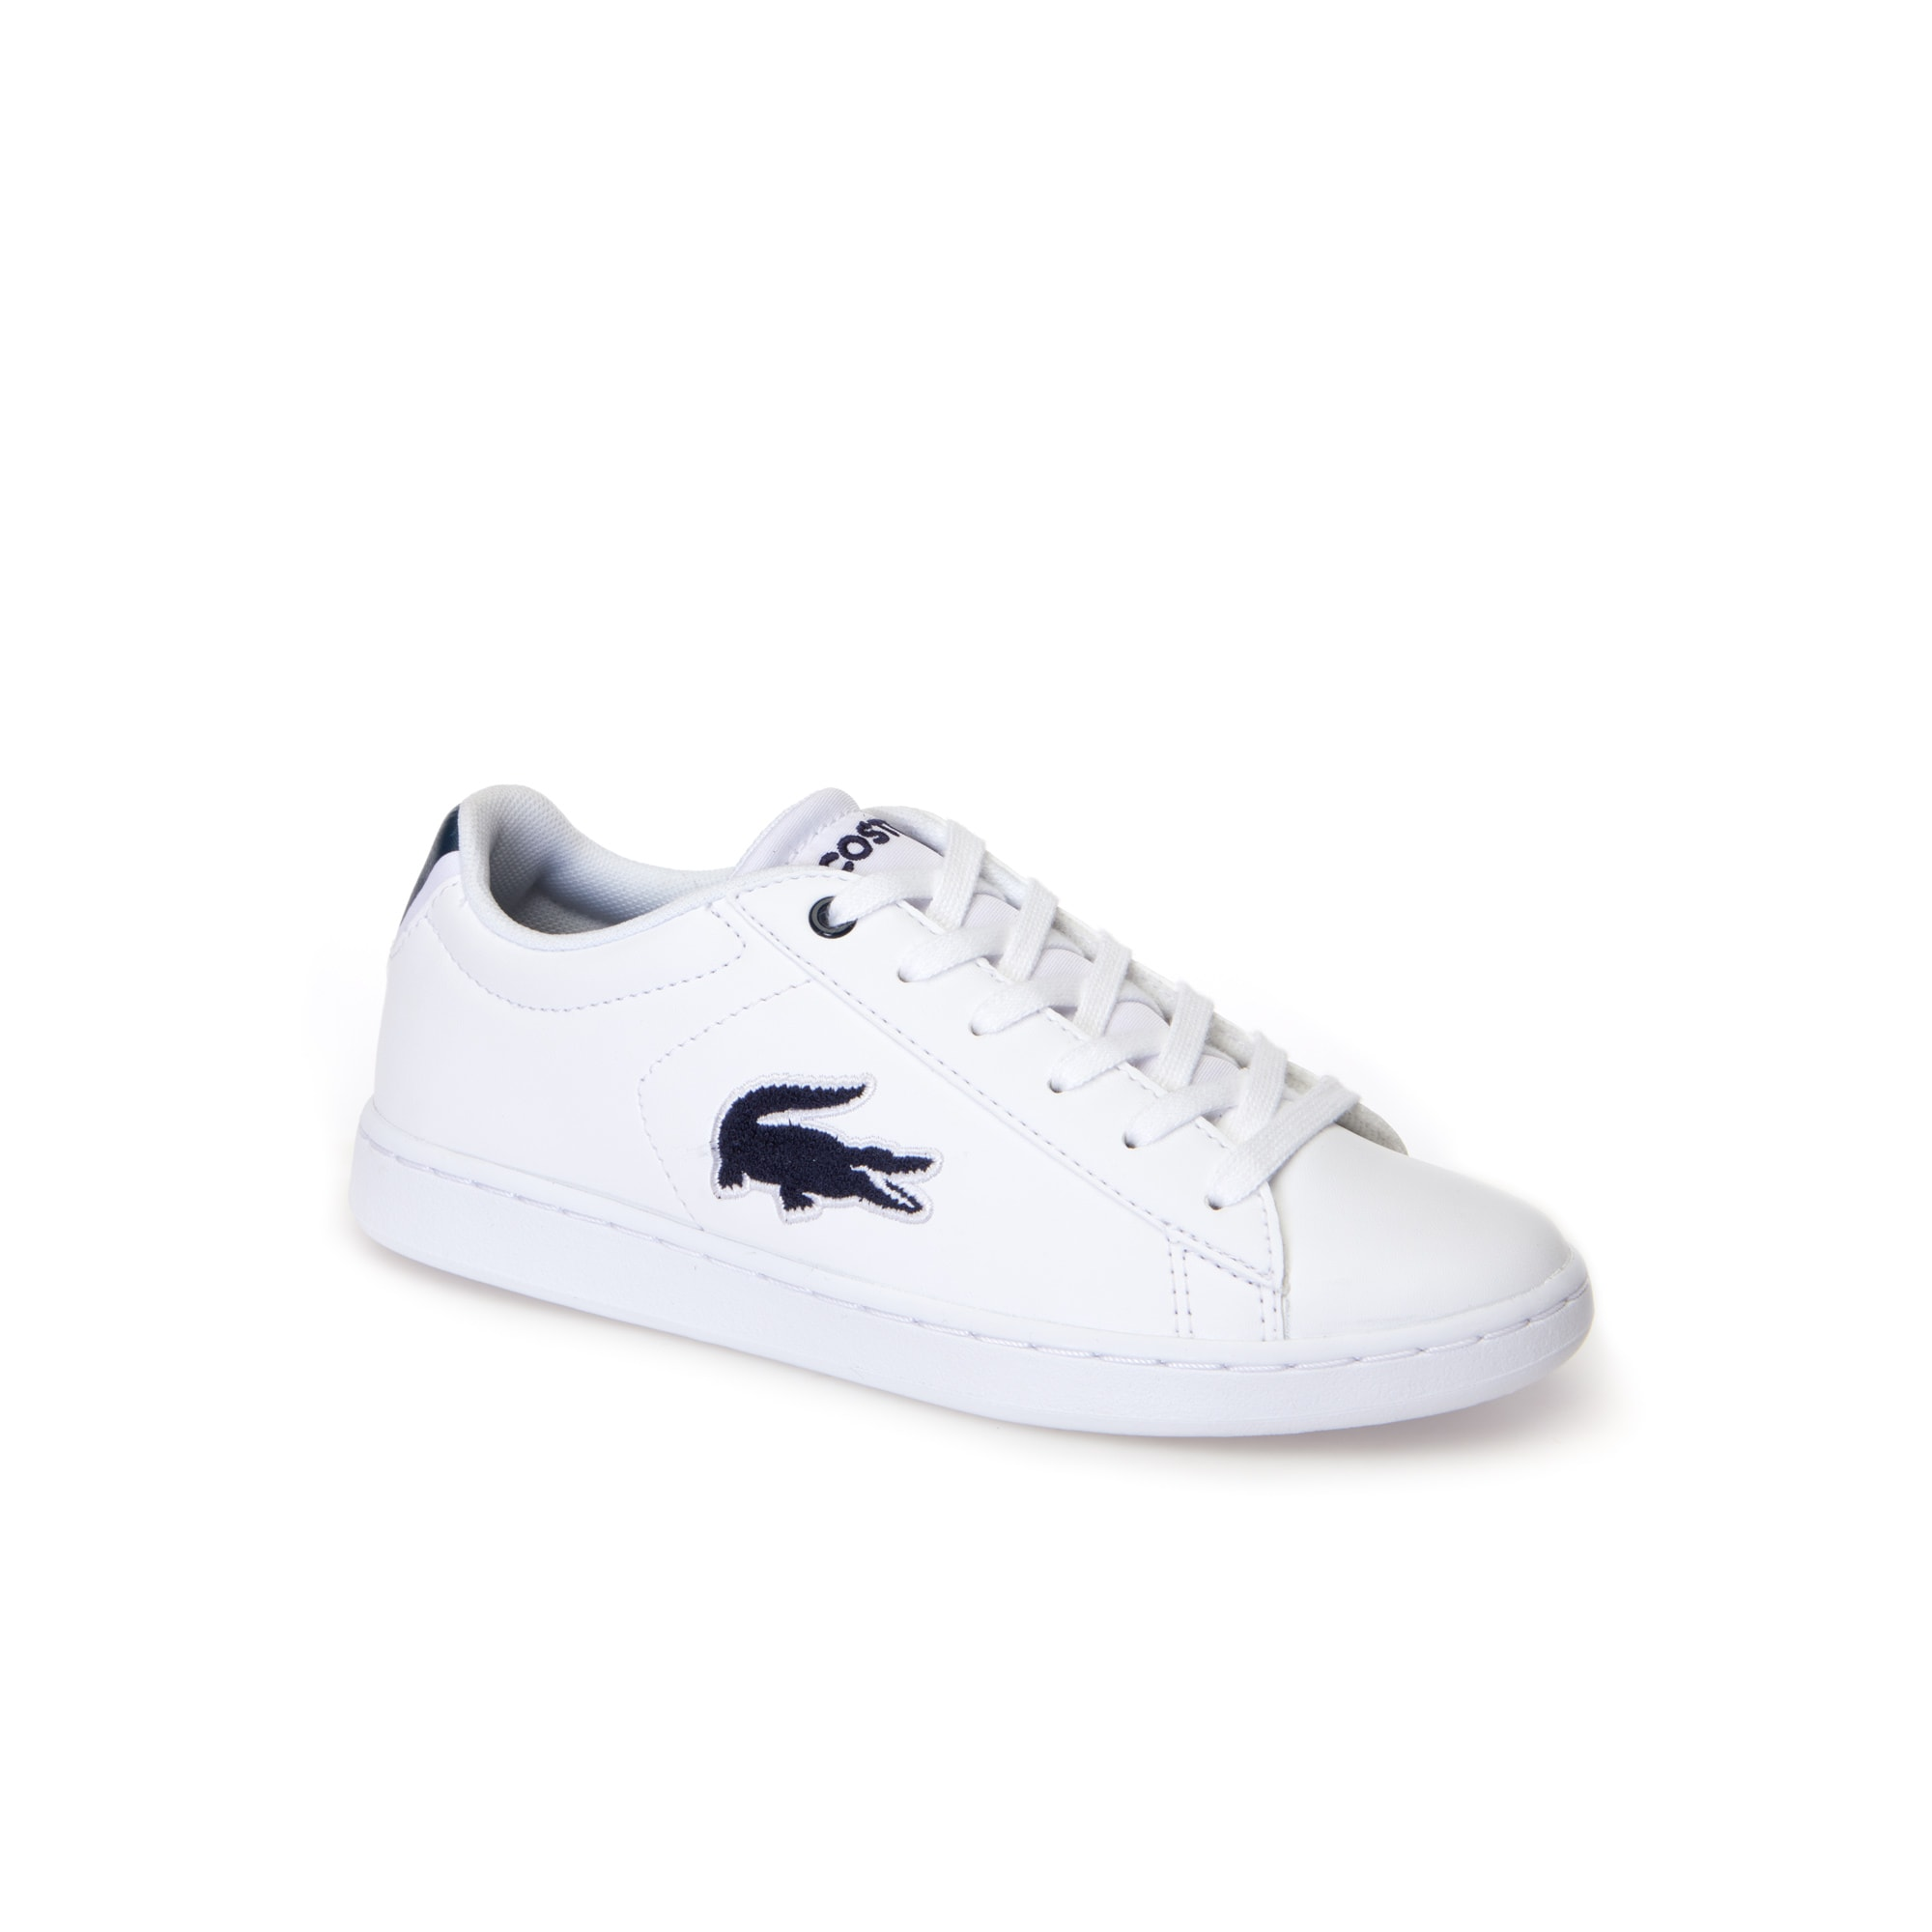 Children's Carnaby Evo White Synthetic and Textile Trainers